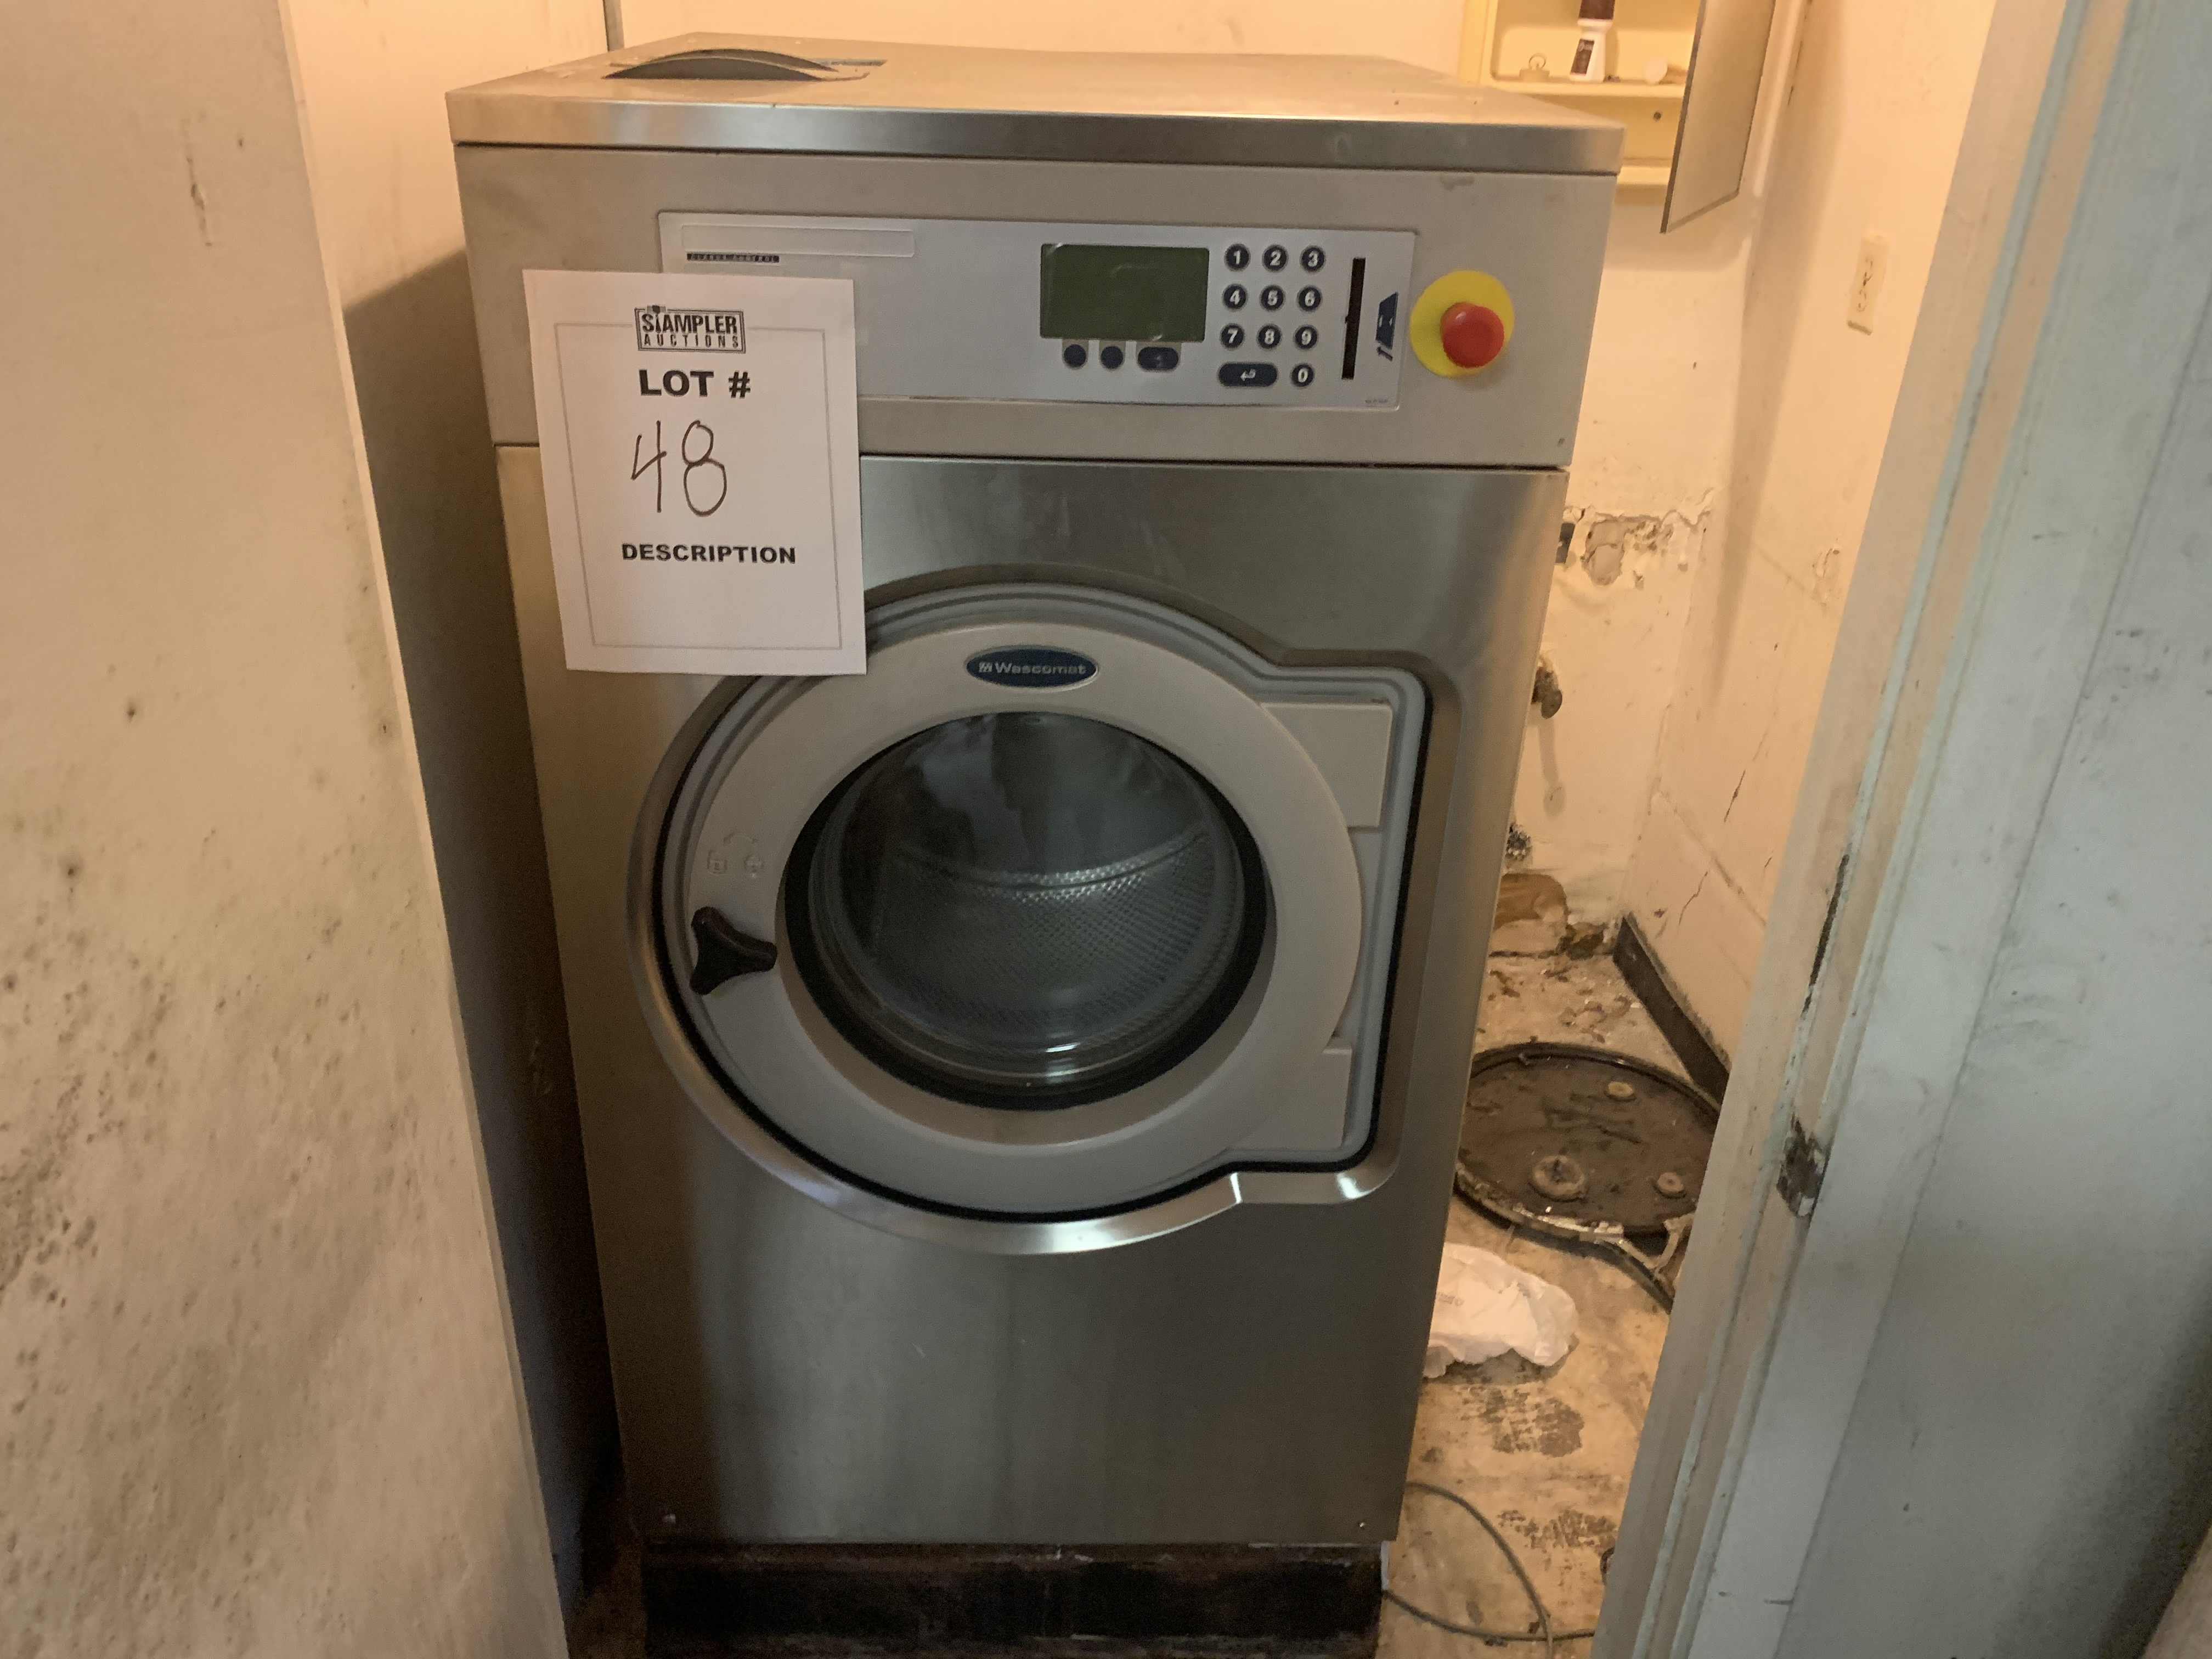 WASCOMAT SV640C WASHING MACHINE WITH CLARUS CONTROL - 40LB CAPACITY